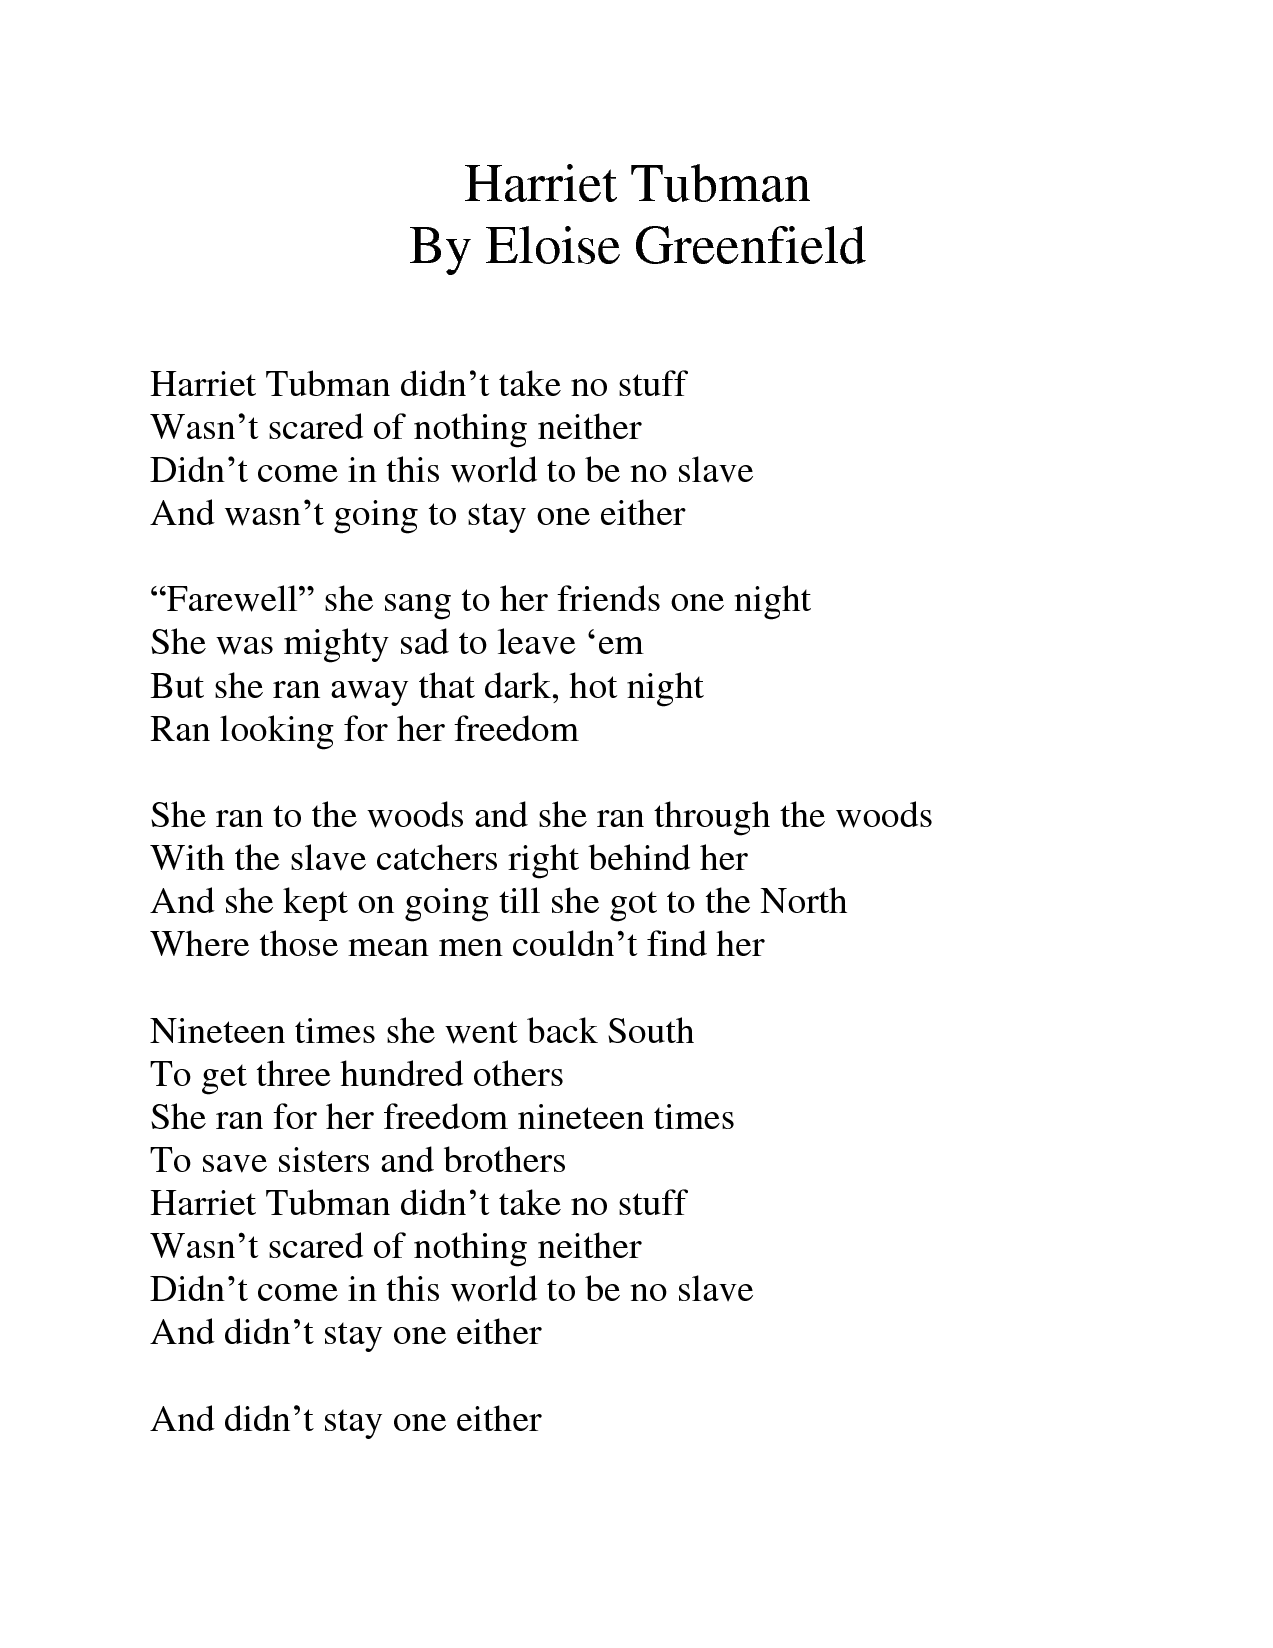 Eloise Greenfield Poems